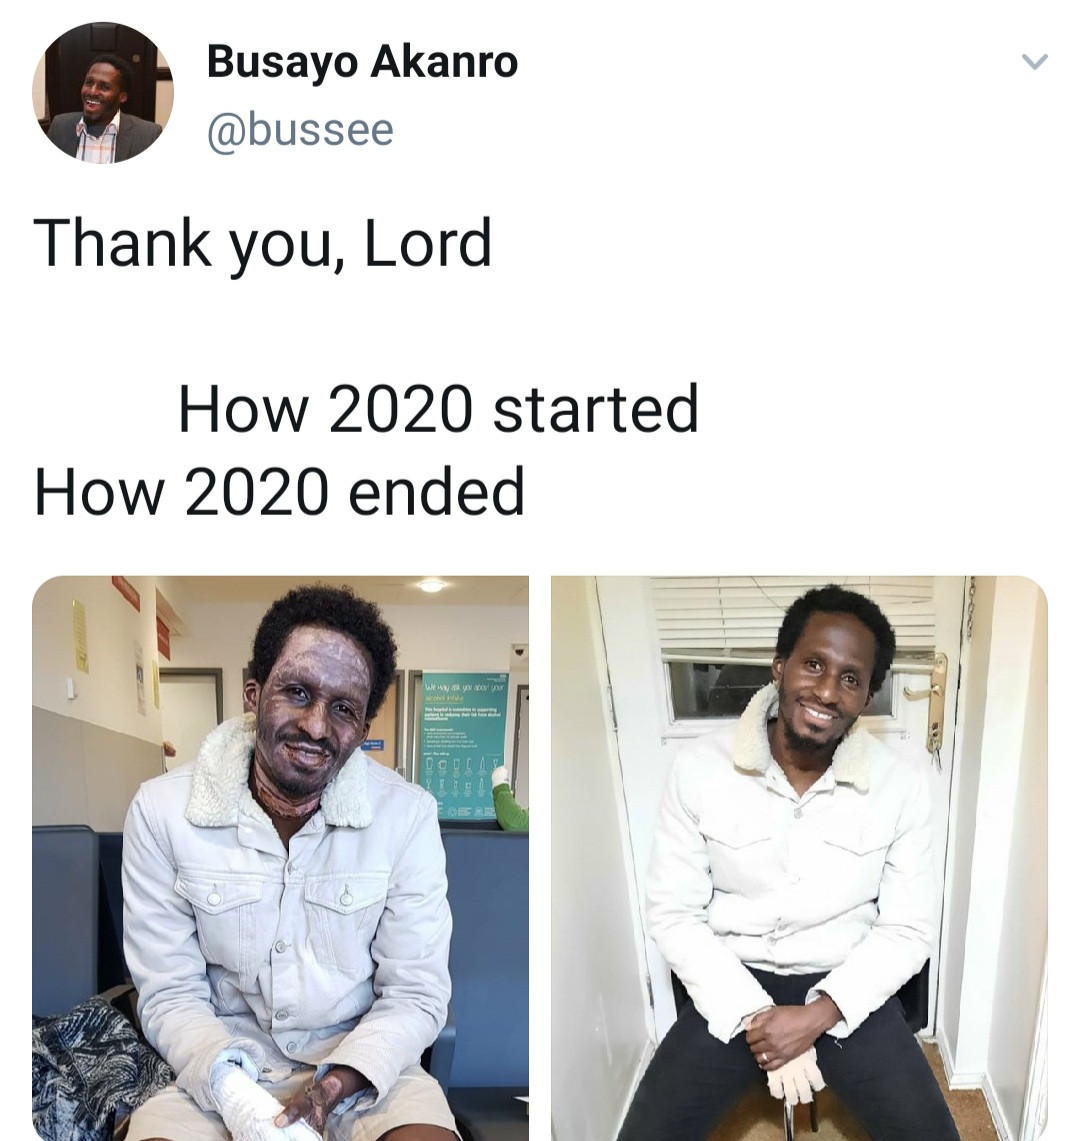 Burn survivor shares photos showing how he started 2020 and how he ended it